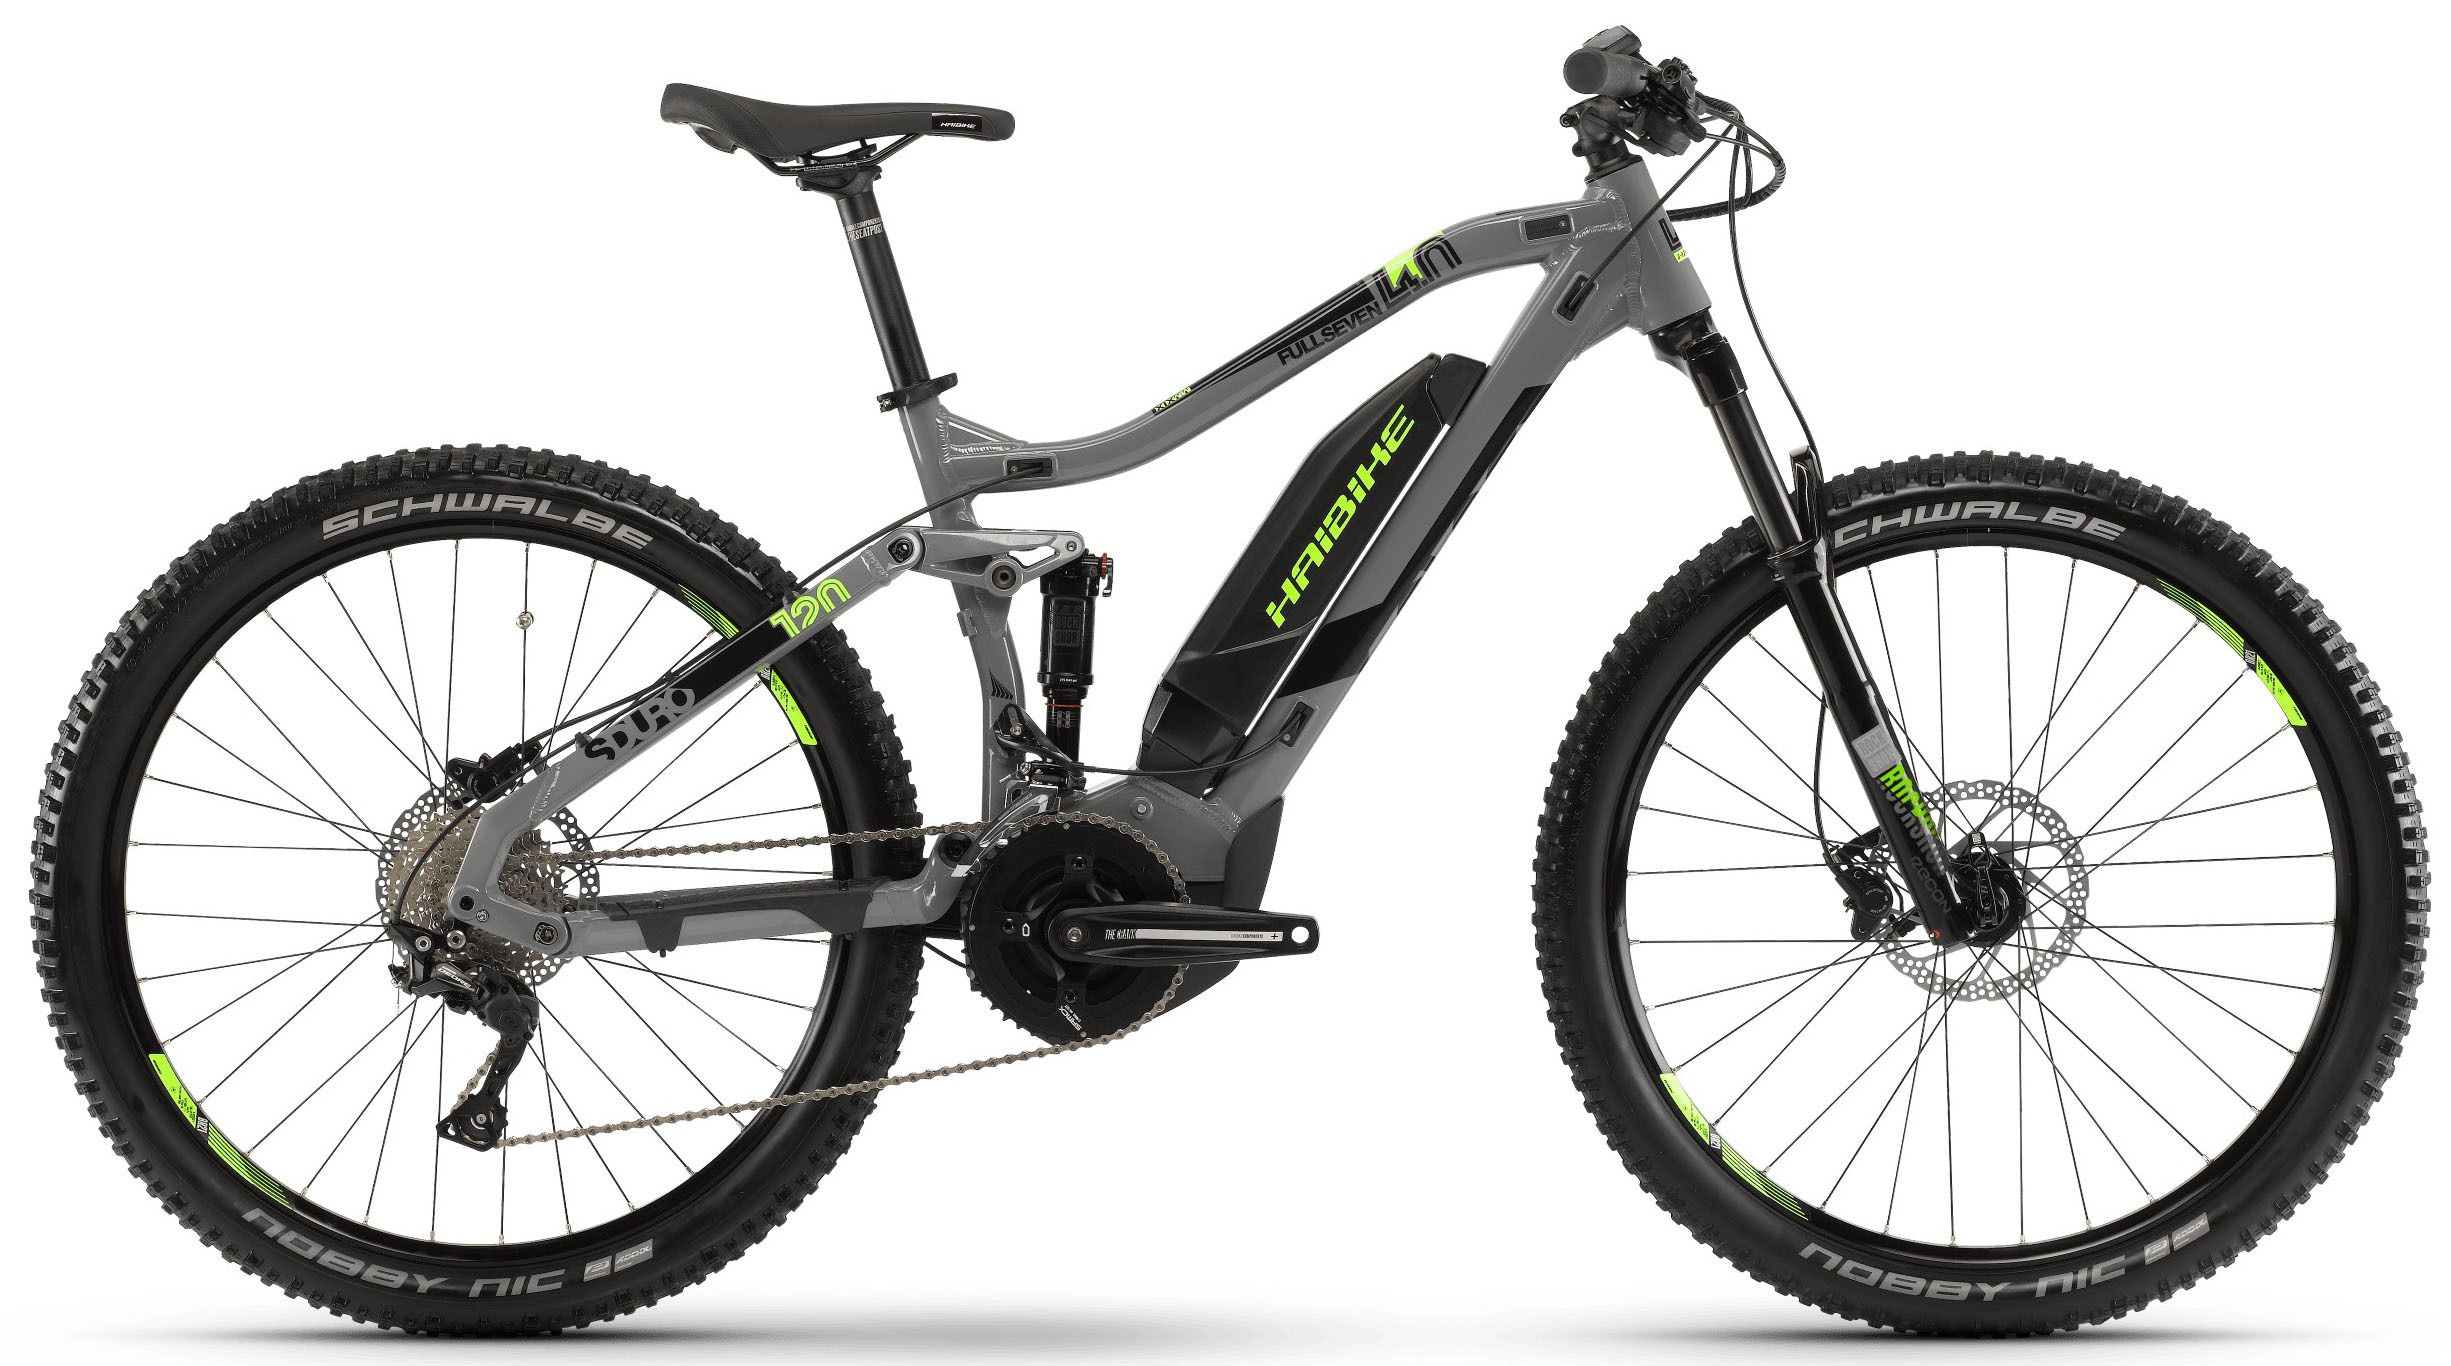 Велосипед Haibike SDURO FullSeven 4.0 500Wh 20-G Deore 2019 велосипед haibike sduro hardnine 4 0 500wh 10 g deore 2019